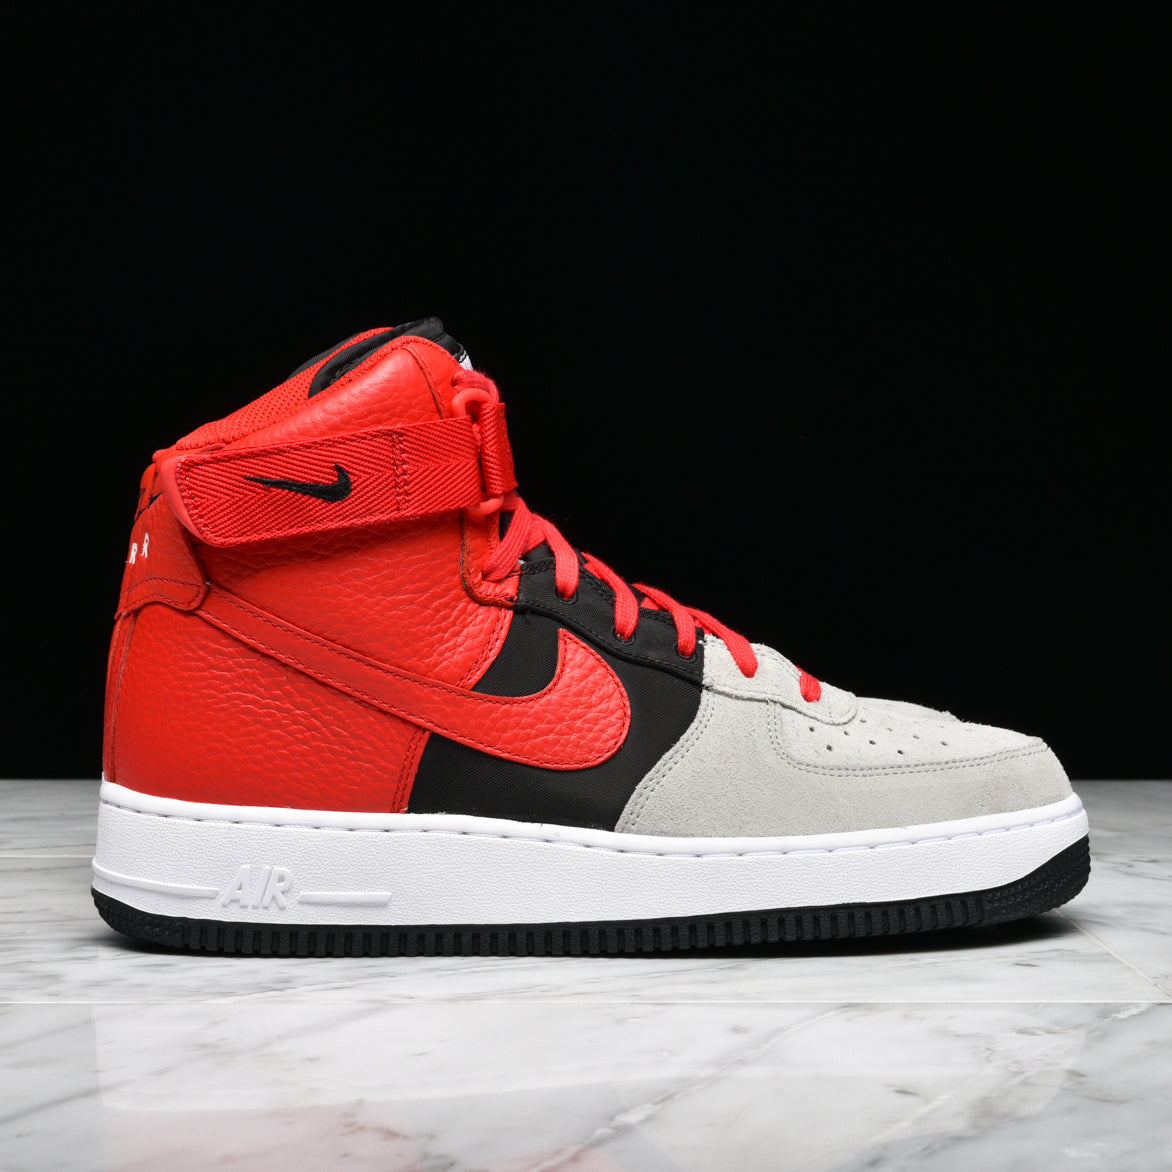 quality design df997 5fcd2 red and black nike air force 1 lv8 high tops